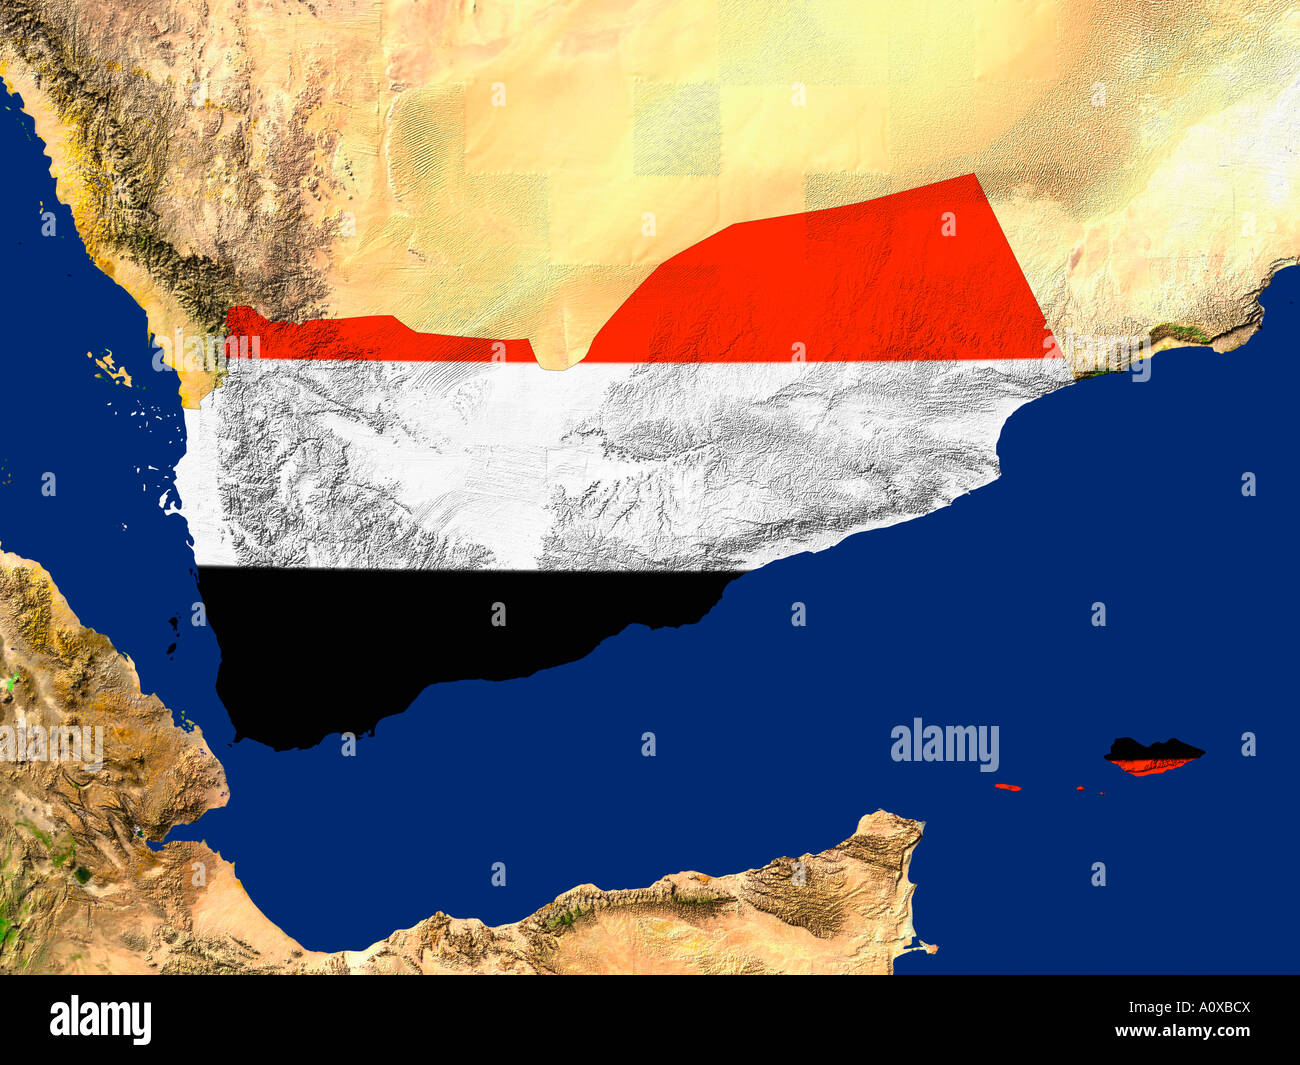 Highlighted Satellite Image of Yemen covered by that Country's Flag - Stock Image